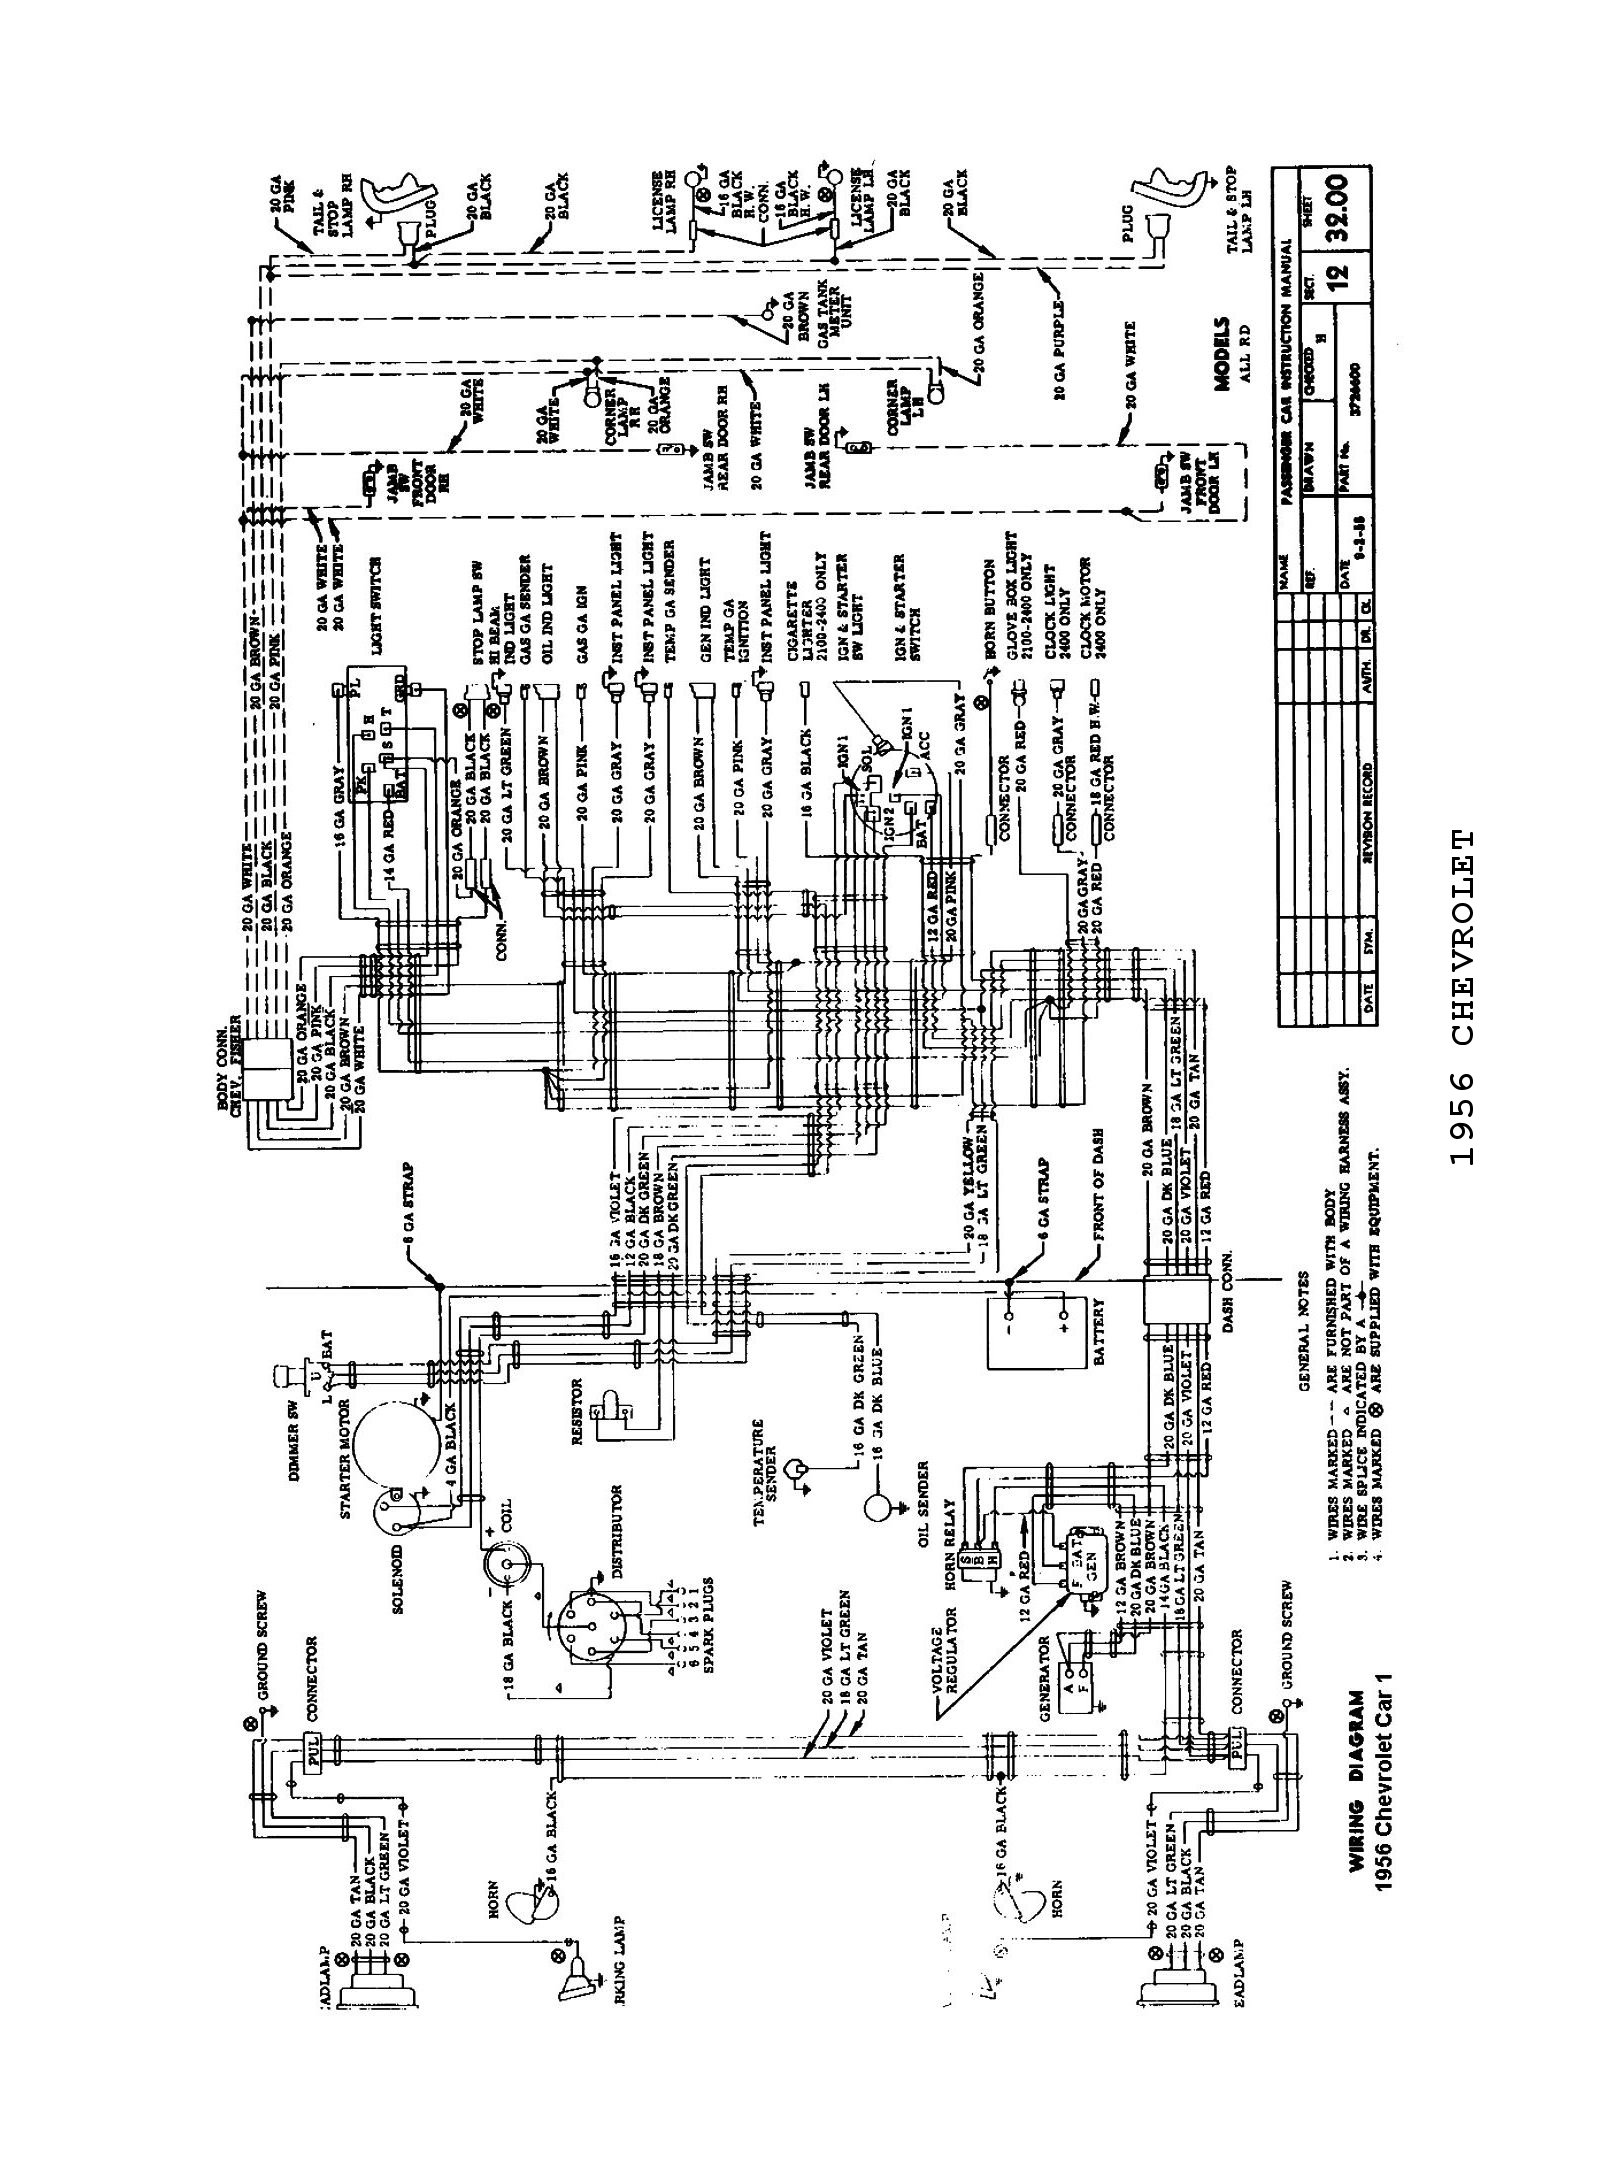 chevy truck wiring diagram on wiring diagram for 1959 chevy pickup